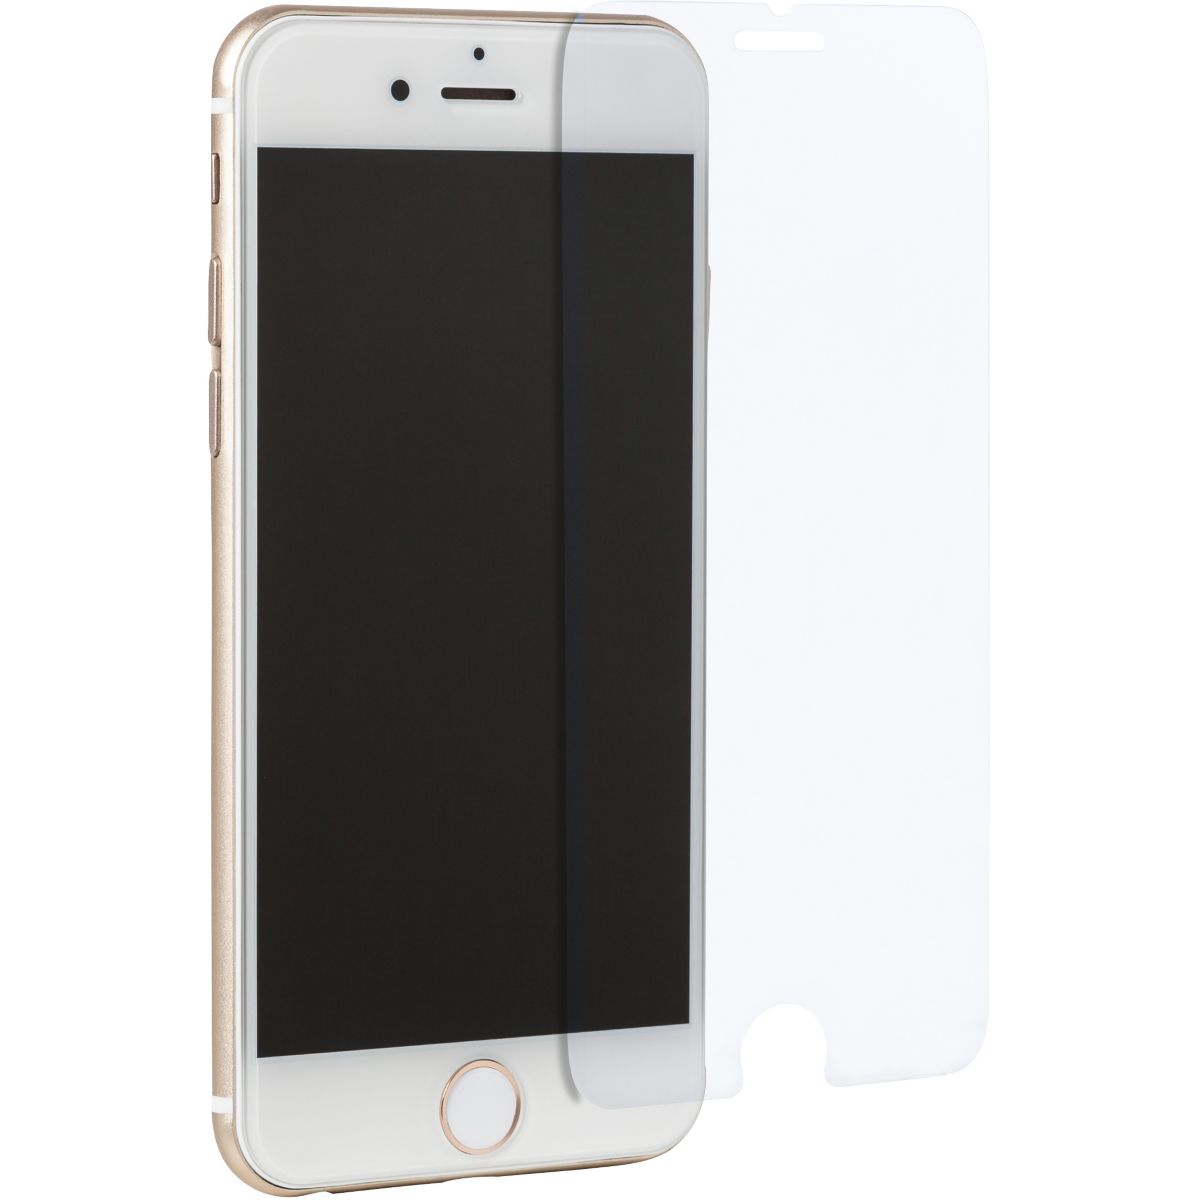 Coque + Protège écran ESSENTIELB iPhone 6/6S Coque+Verre trempé+Applicate (photo)